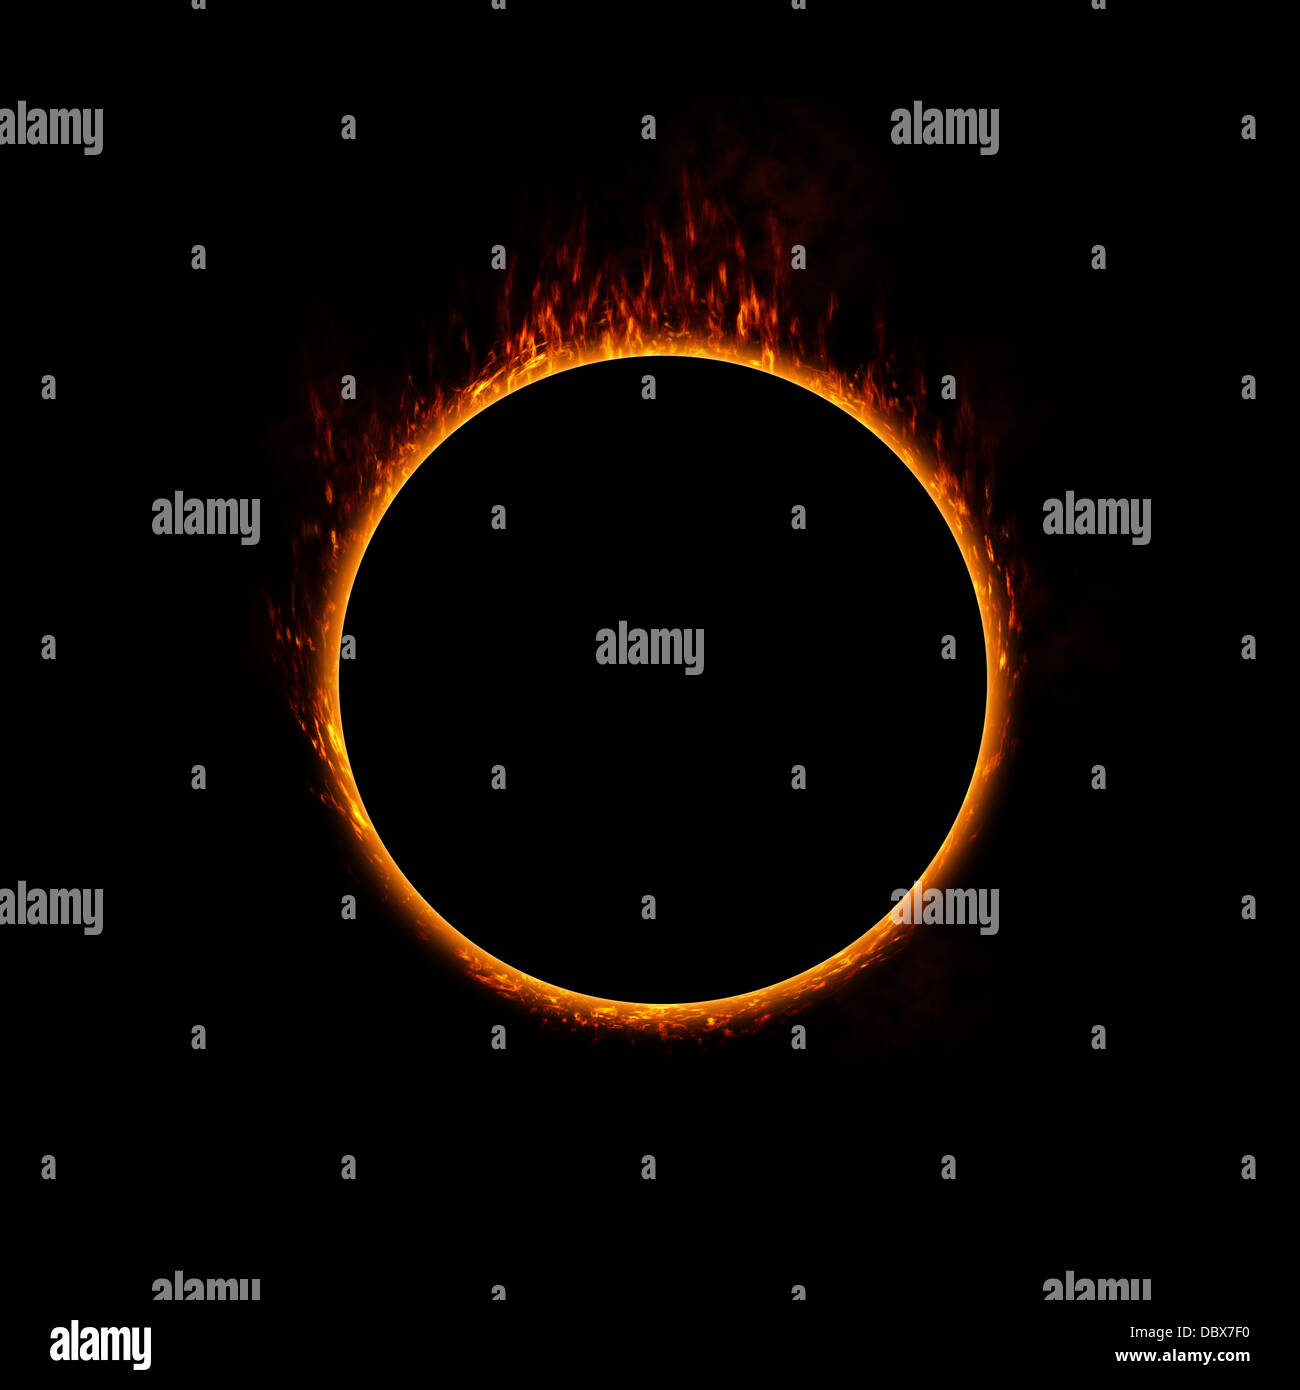 Burning ring of fire. concept for eclipse, solar energy, heat or use in a design - Stock Image